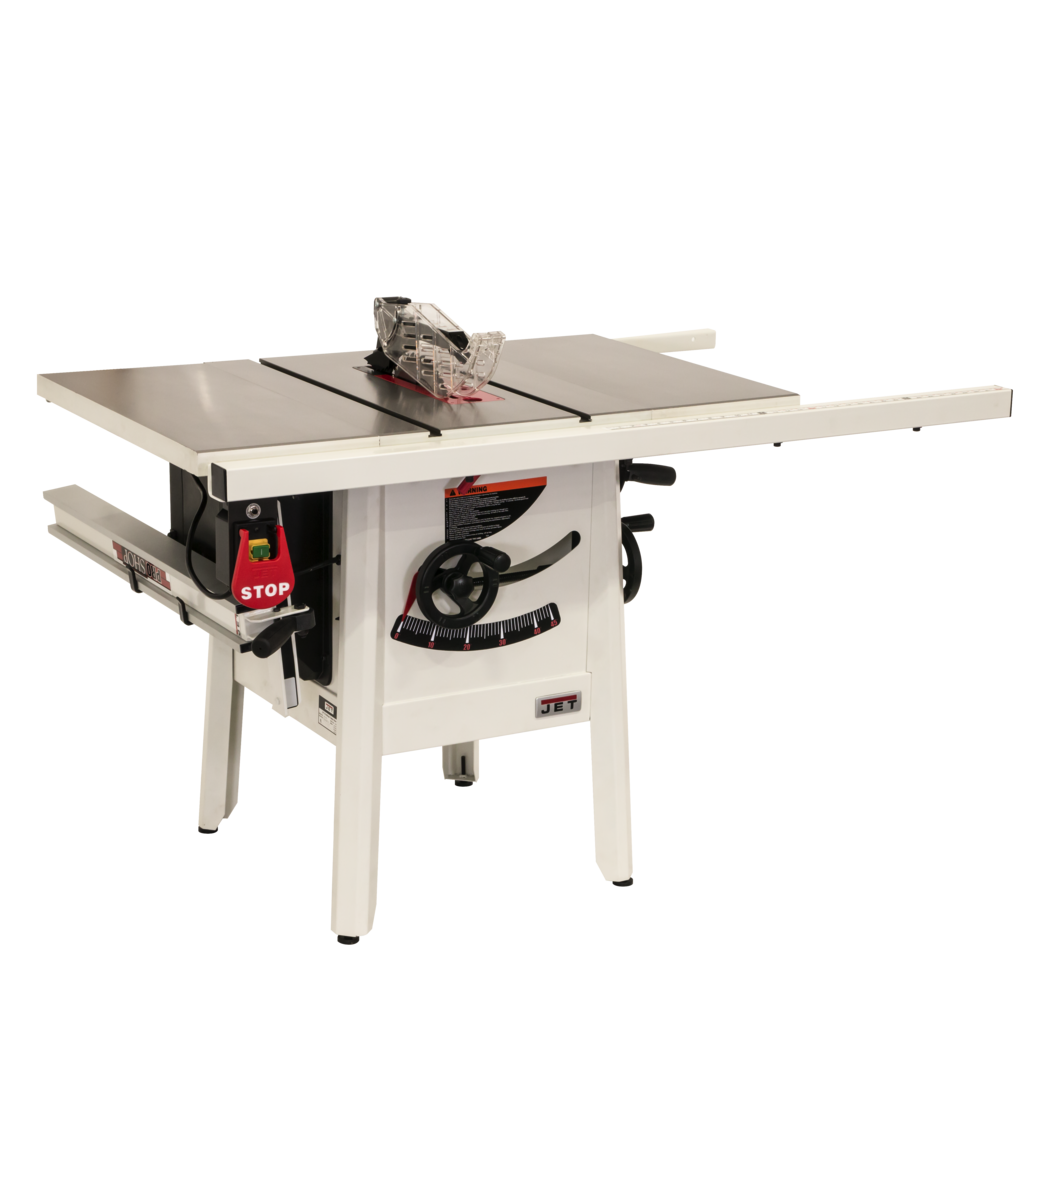 "The JPS-10 1.75 HP 115V 30"" Proshop Tablesaw Cast wings"